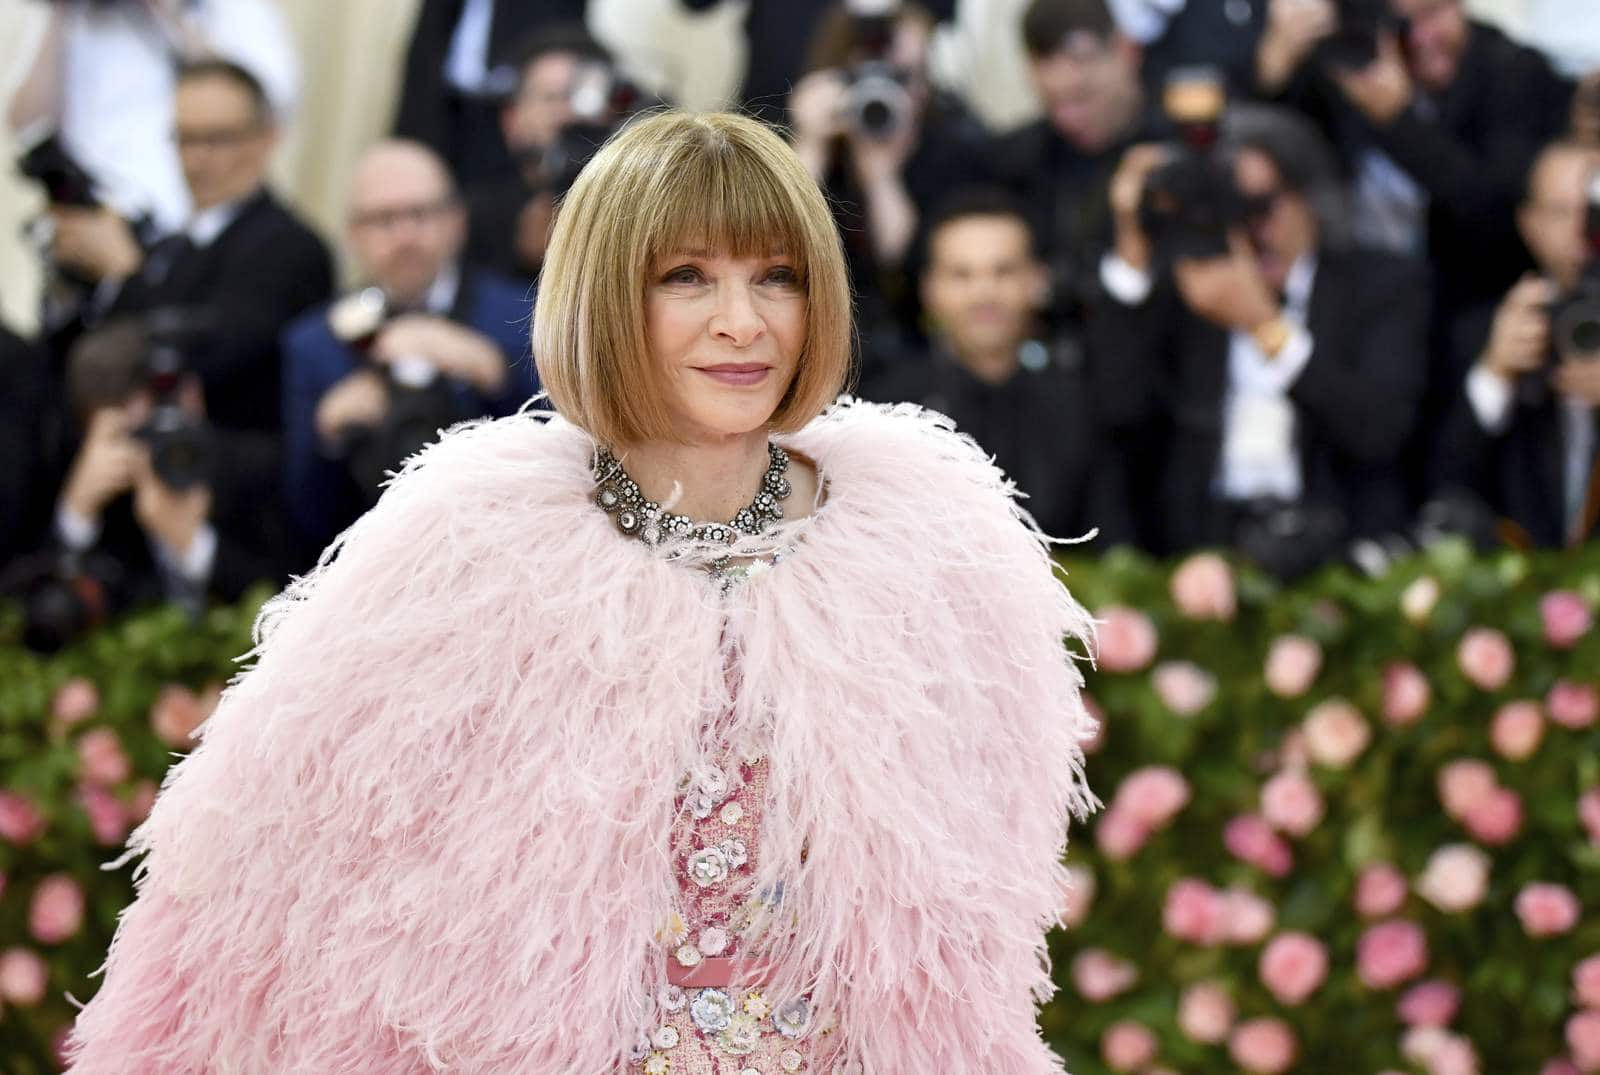 Coronavirus Outbreak: Met Gala 2020 Postponed By Metropolitan Museum Of Art TIll Further Notice